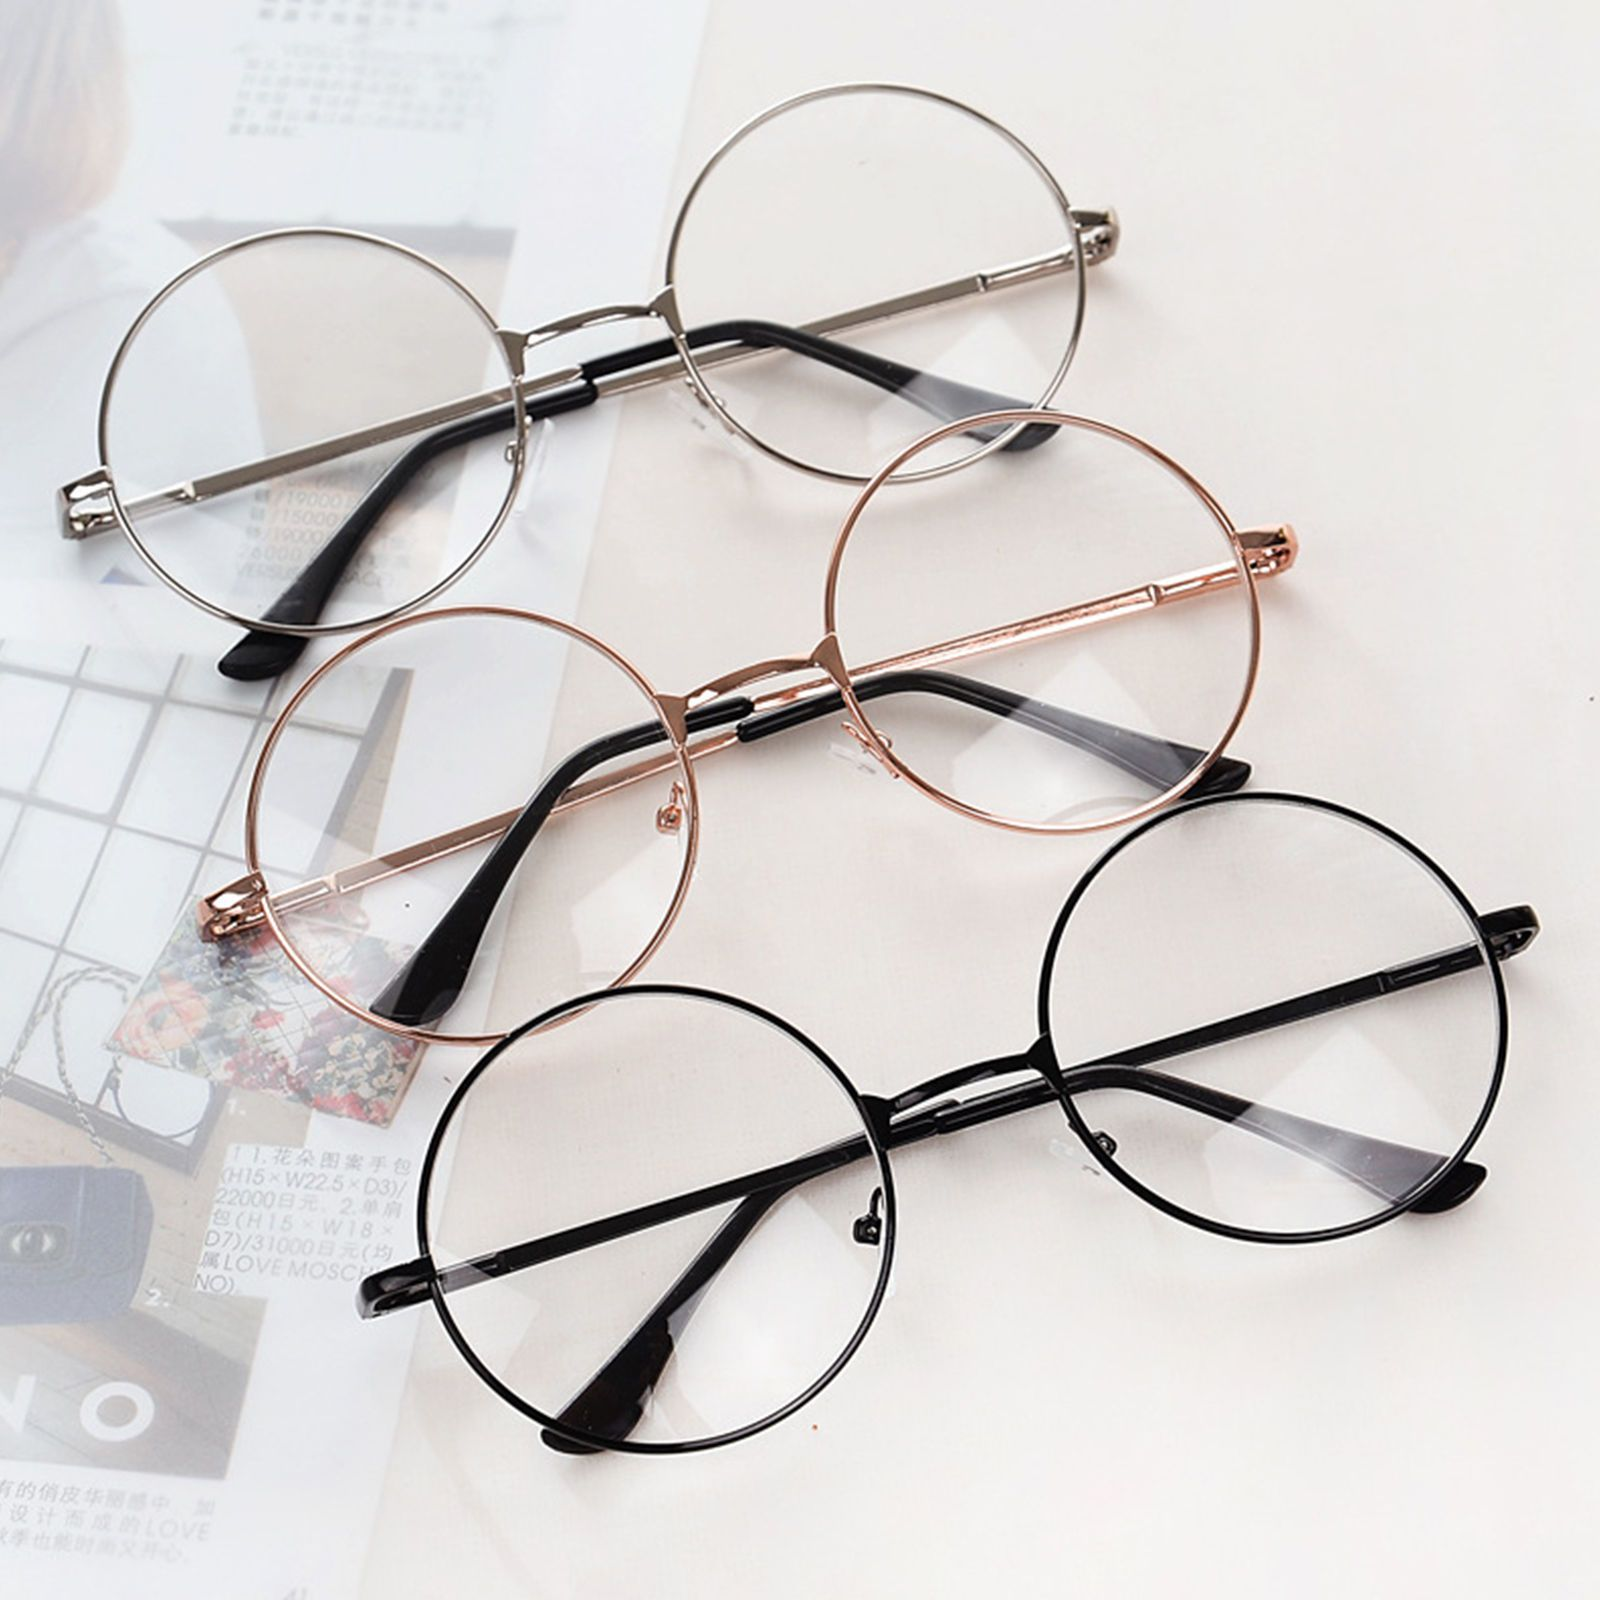 53674775d6 Fab Women Men Large Metal Frame Clear Lens Round Circle Eye Glasses Nerd  Vintage